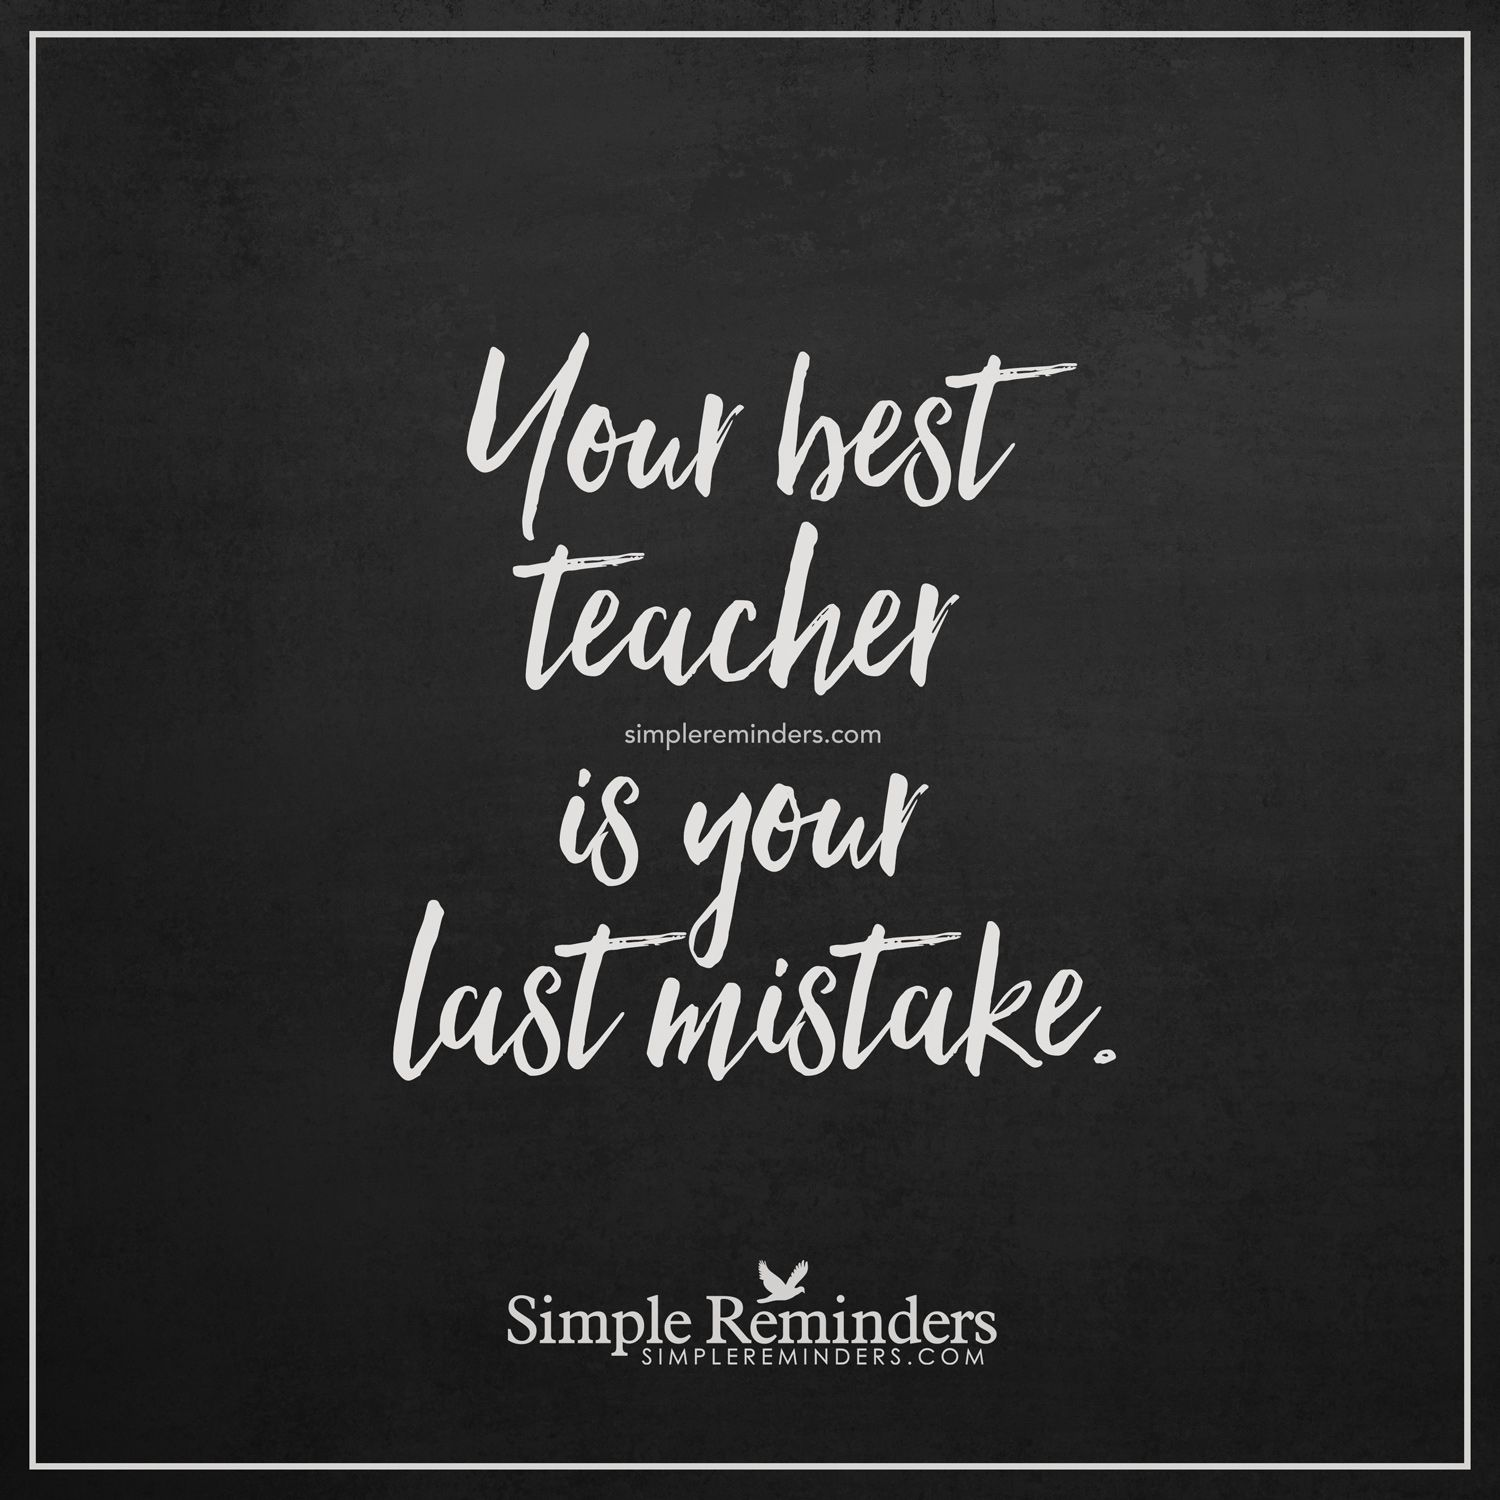 Best Teacher Quotes: Your Best Teacher Your Best Teacher Is Your Last Mistake